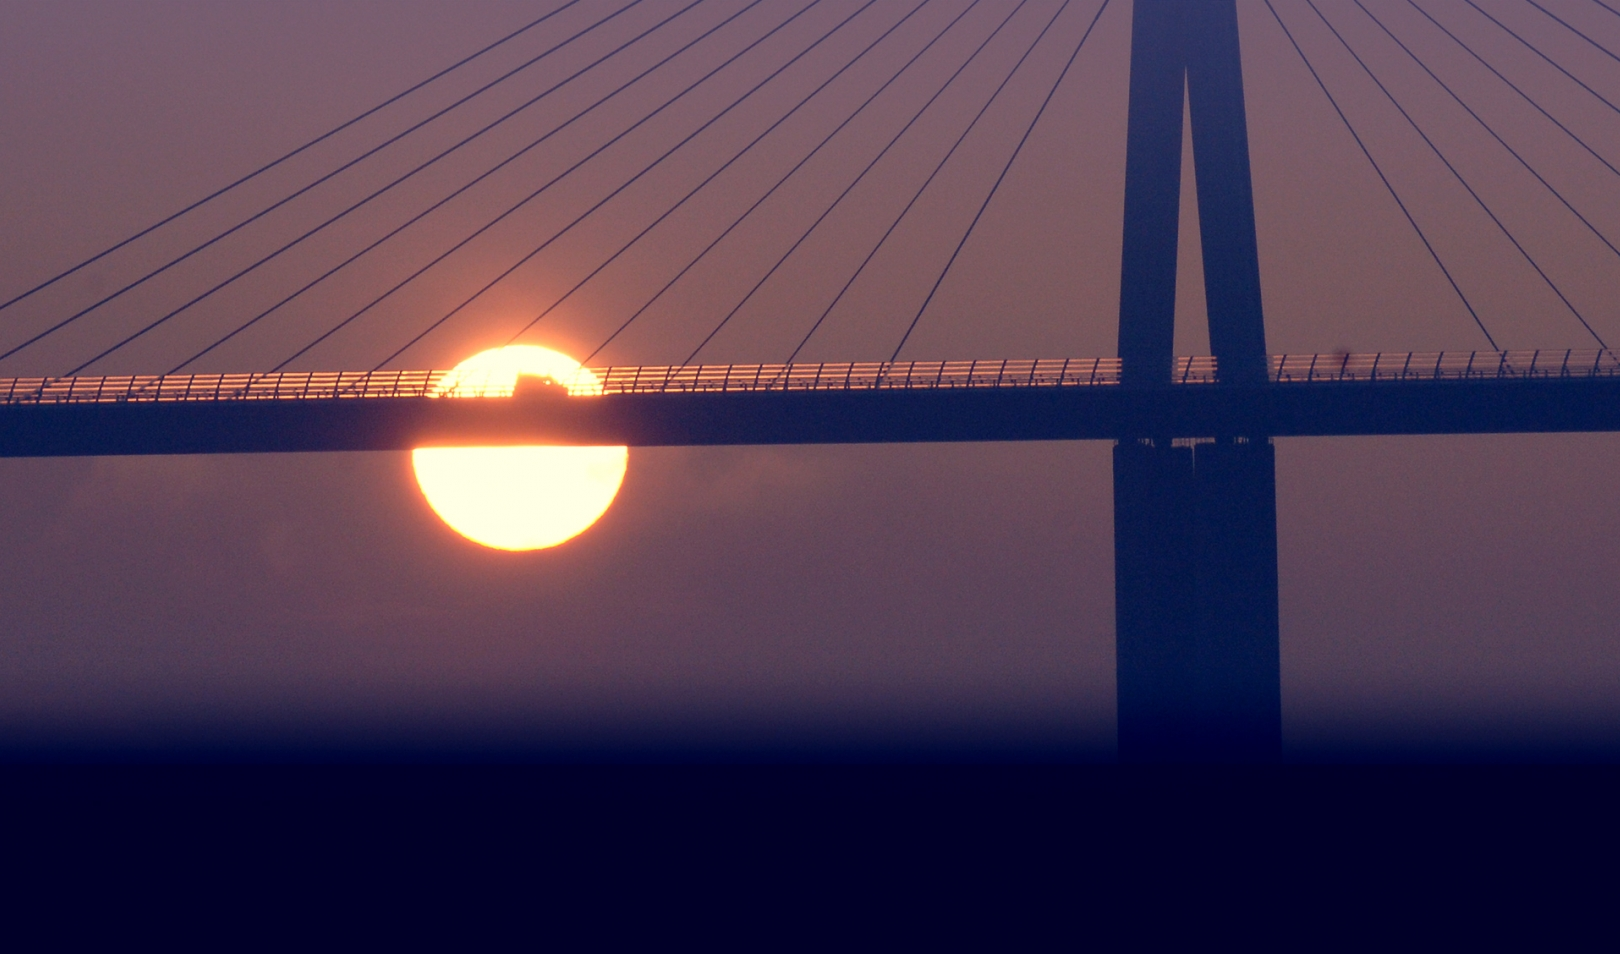 The Millau Viaduct at sunset